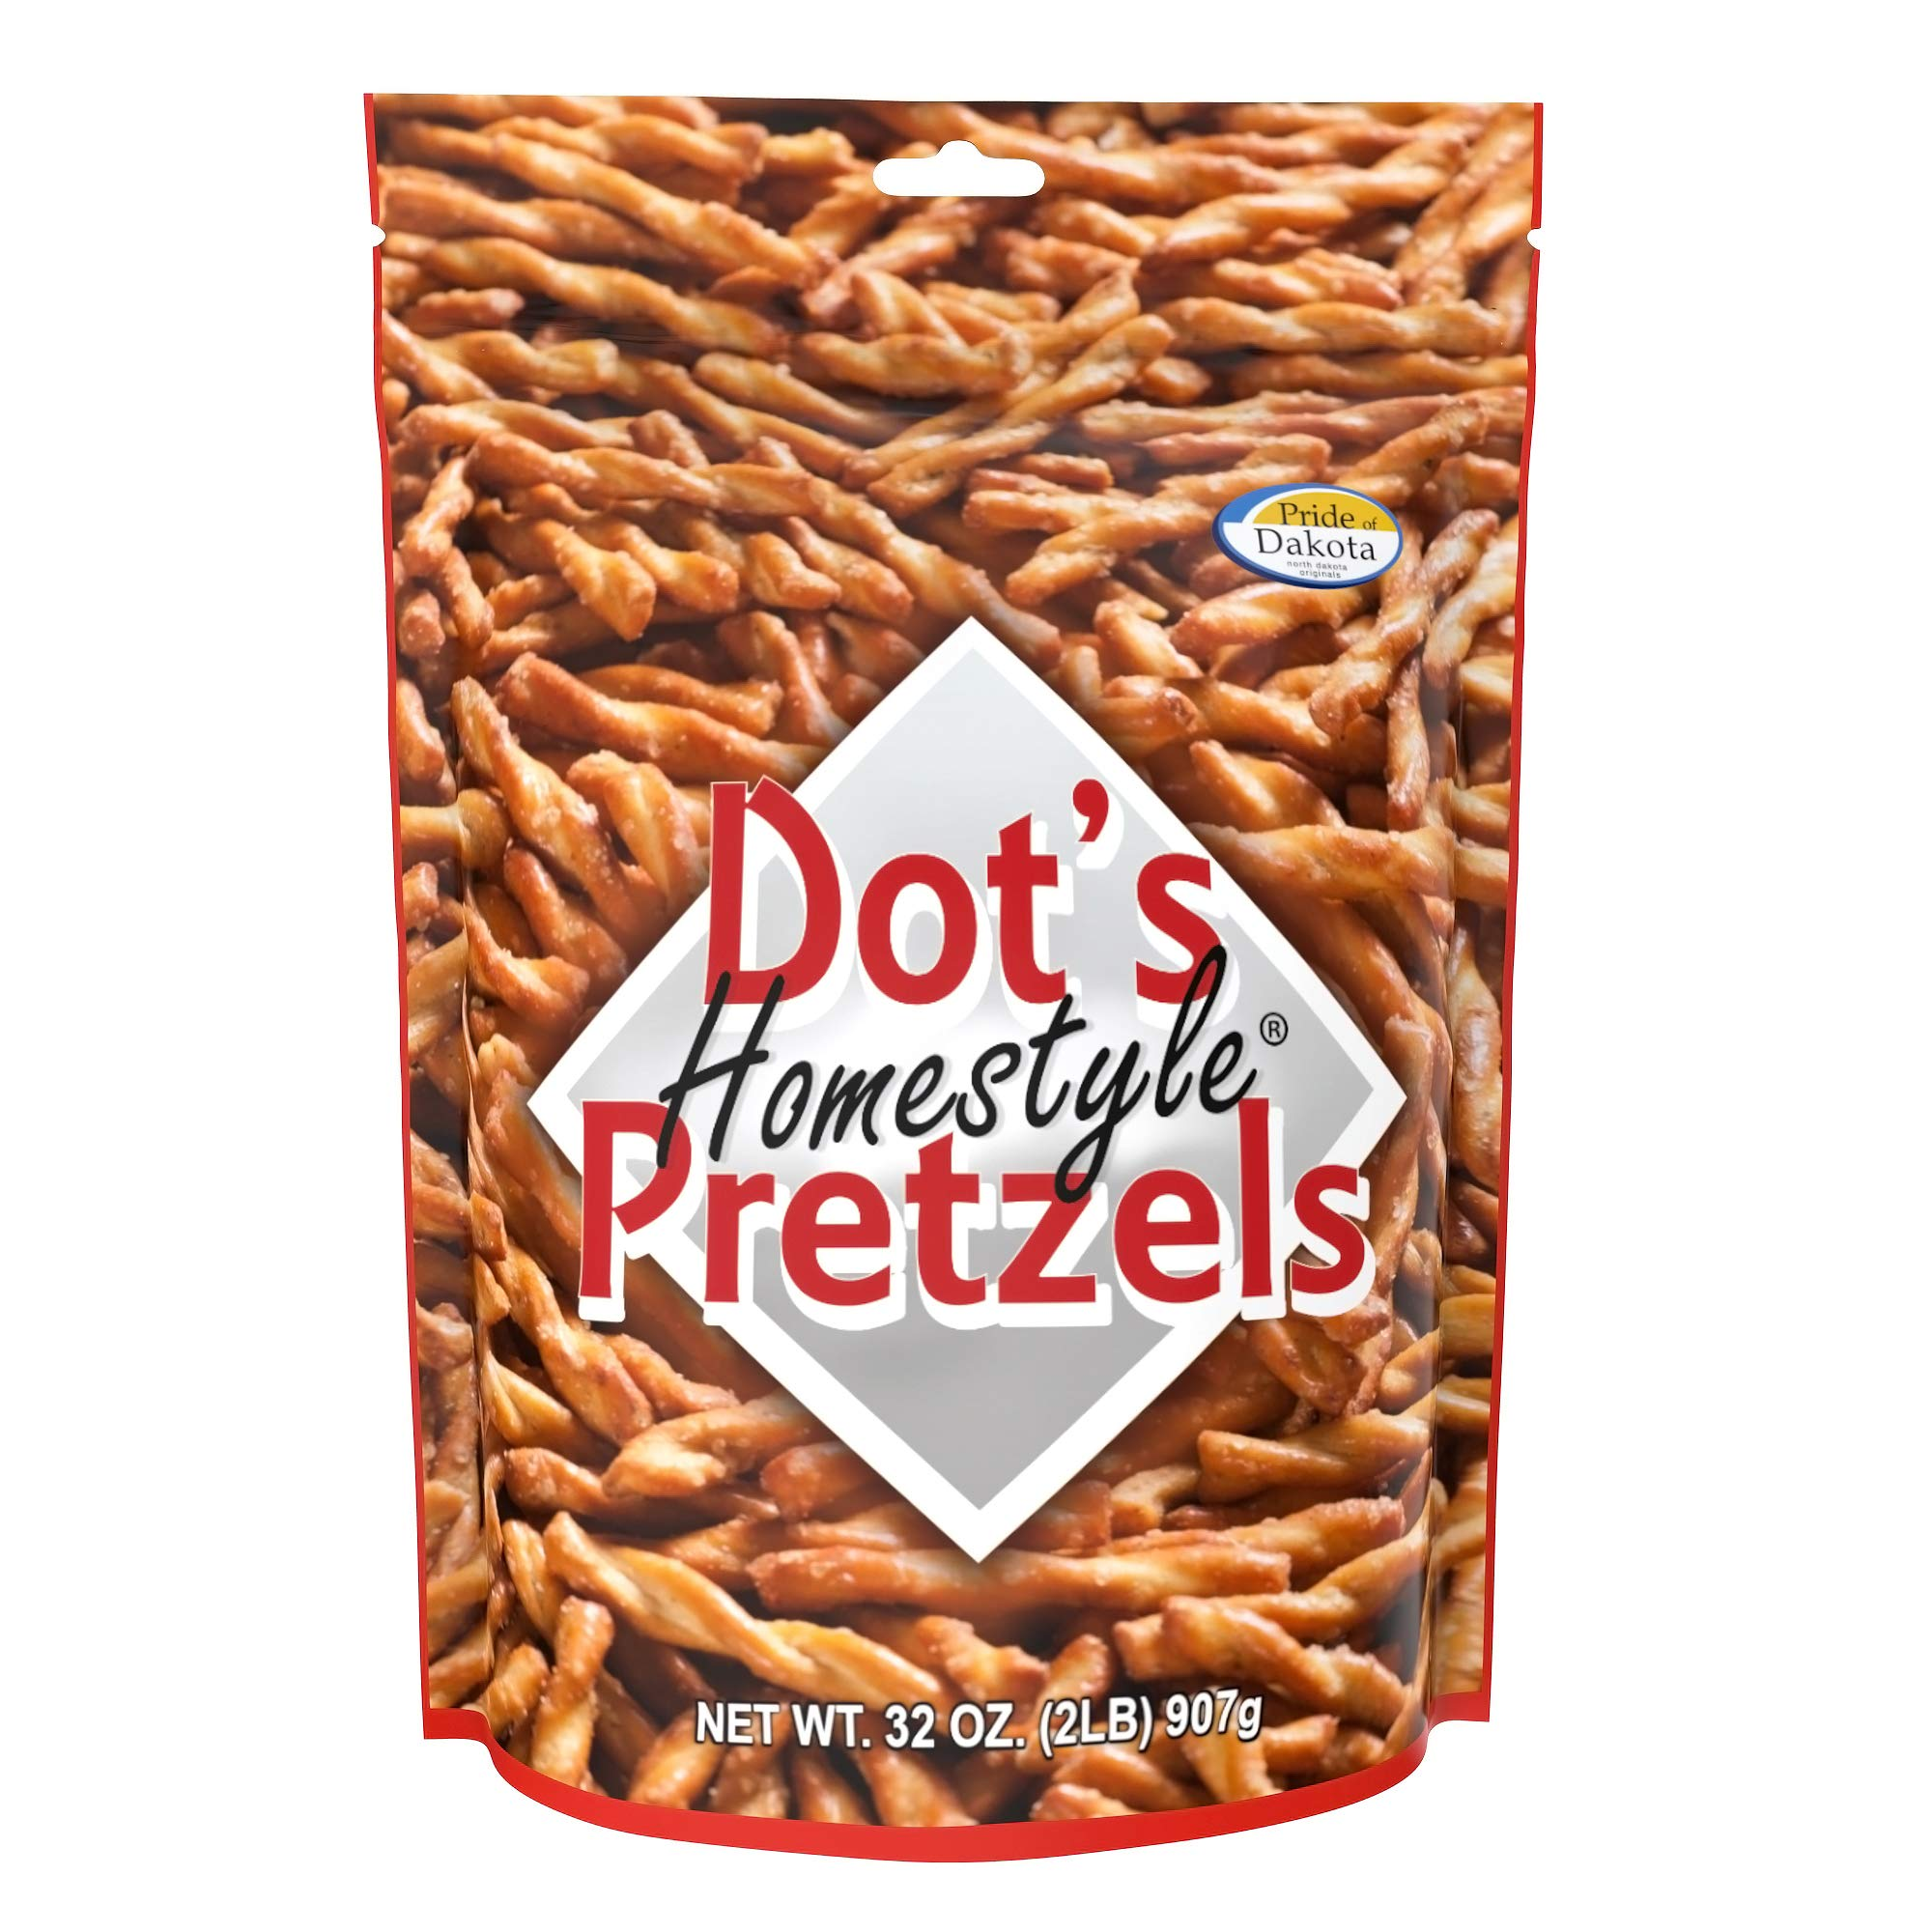 Dot's Homestyle Pretzels 2 lb. Bag (3 Bags) 32 oz. Seasoned Pretzel Snack Sticks (Packaging May Vary) by Dot's Homestyle Pretzels (Image #1)